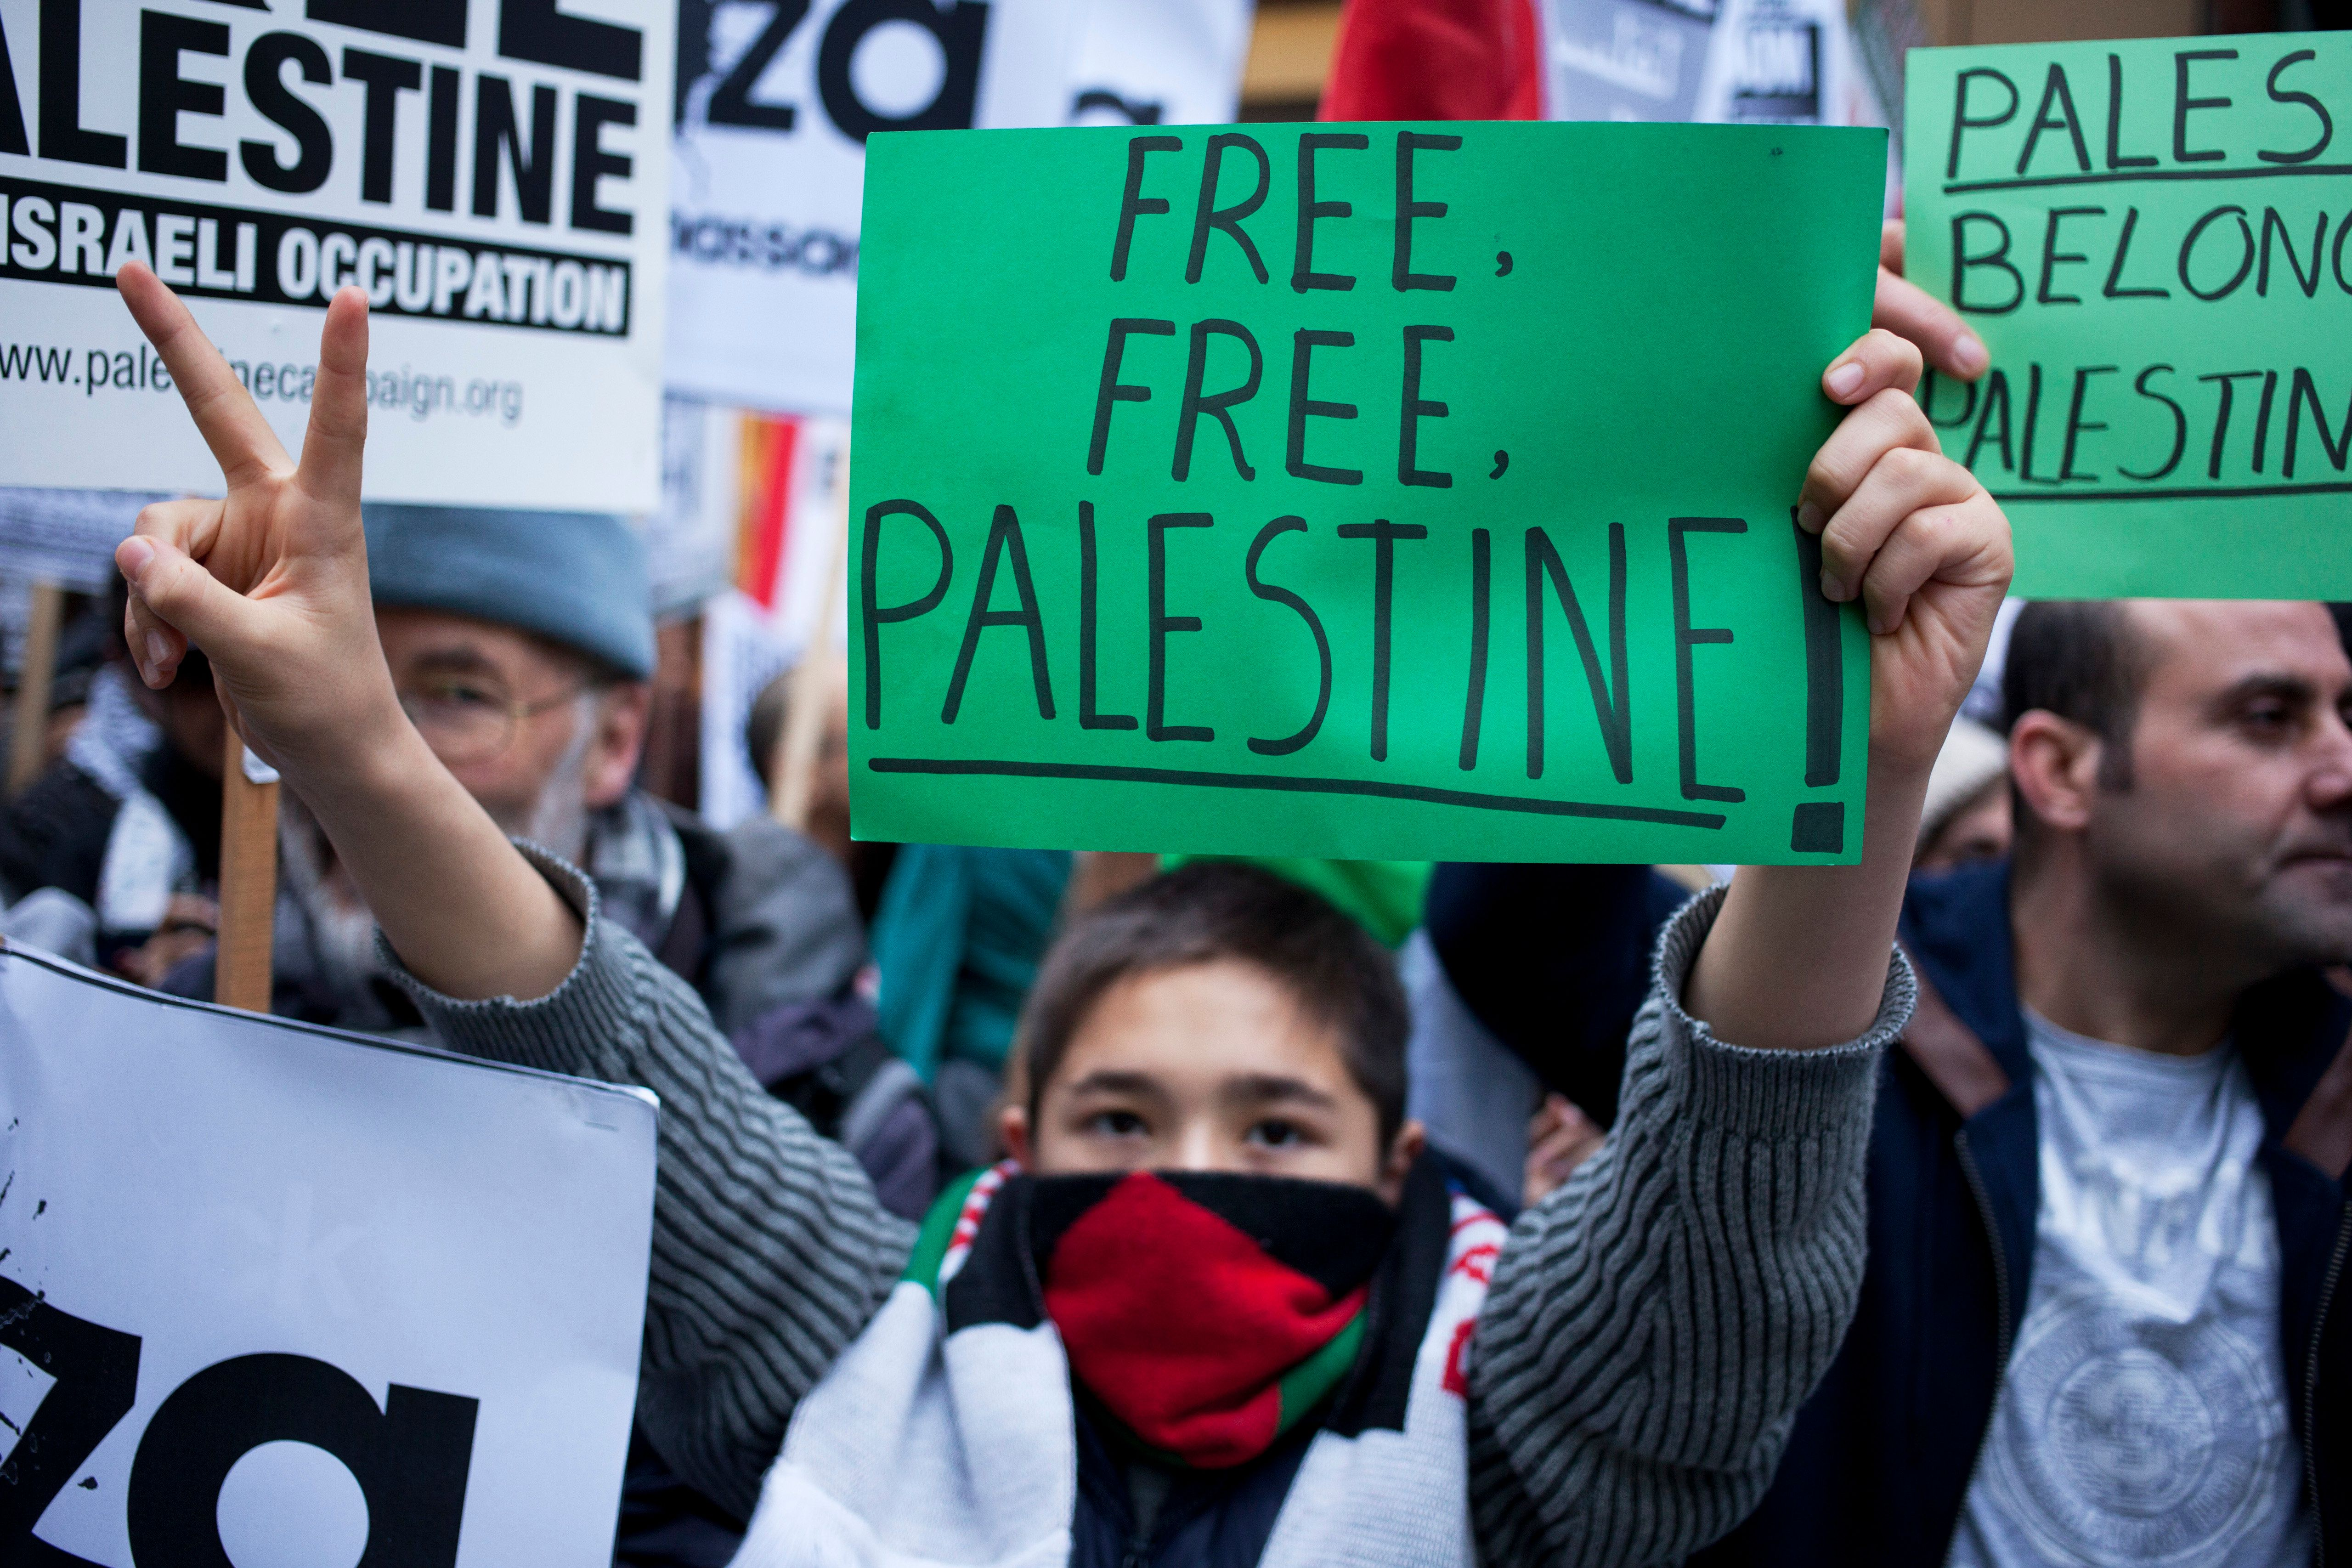 A protest in London on Nov. 17, 2012 against Israeli attacks on